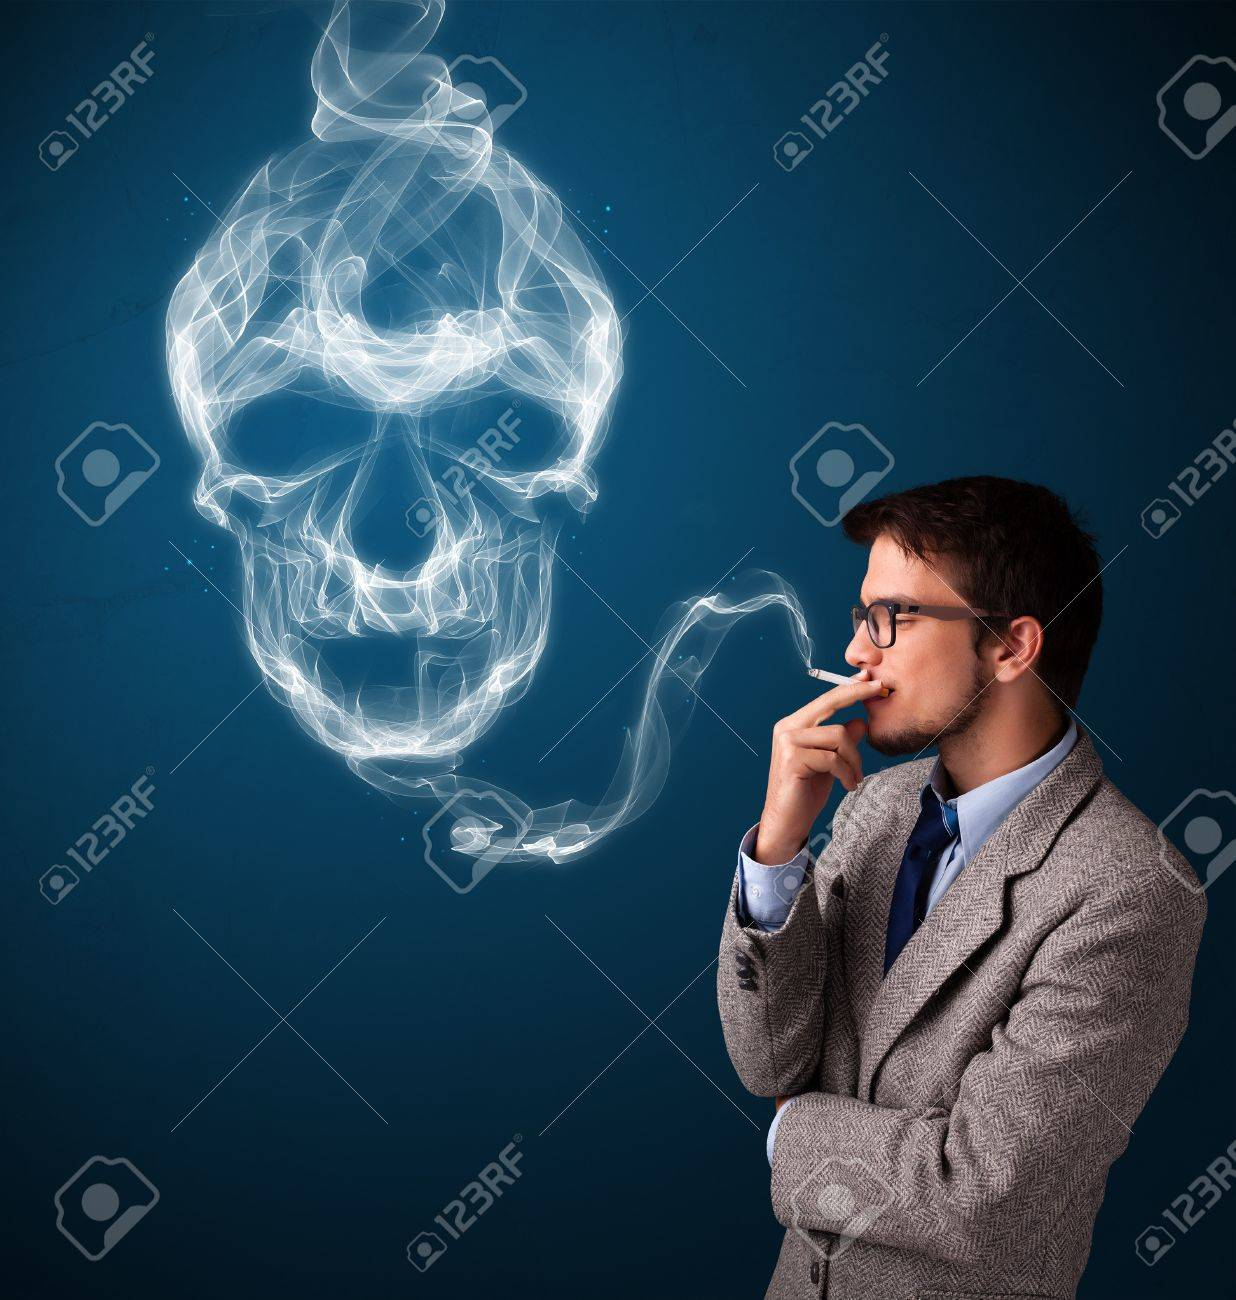 Handsome young man smoking dangerous cigarette with toxic skull smoke Stock Photo - 21017585